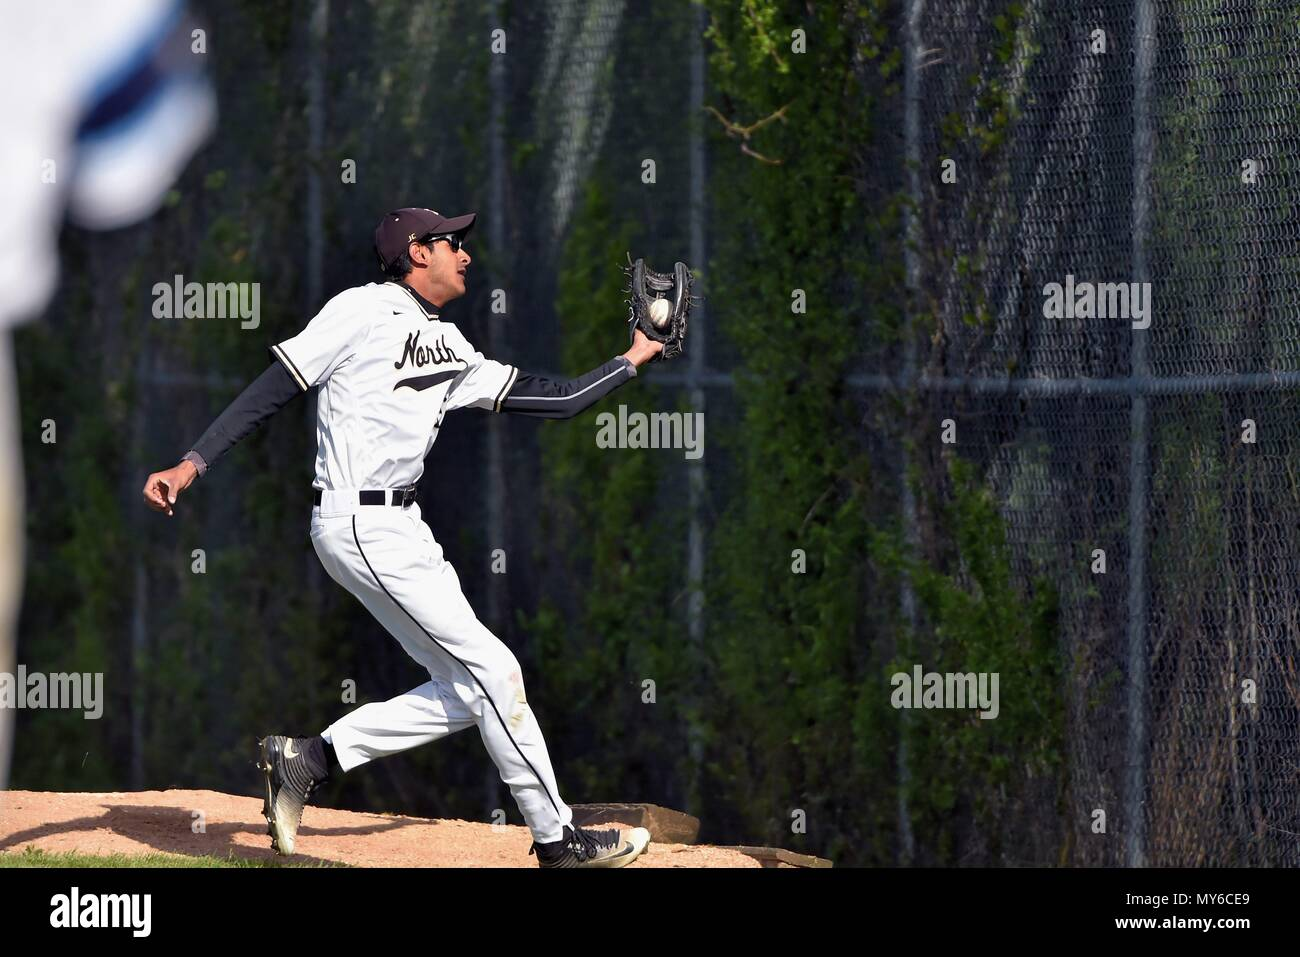 Right fielder making a one-handed running catch of a fly ball in the opposing bullpen. USA. - Stock Image